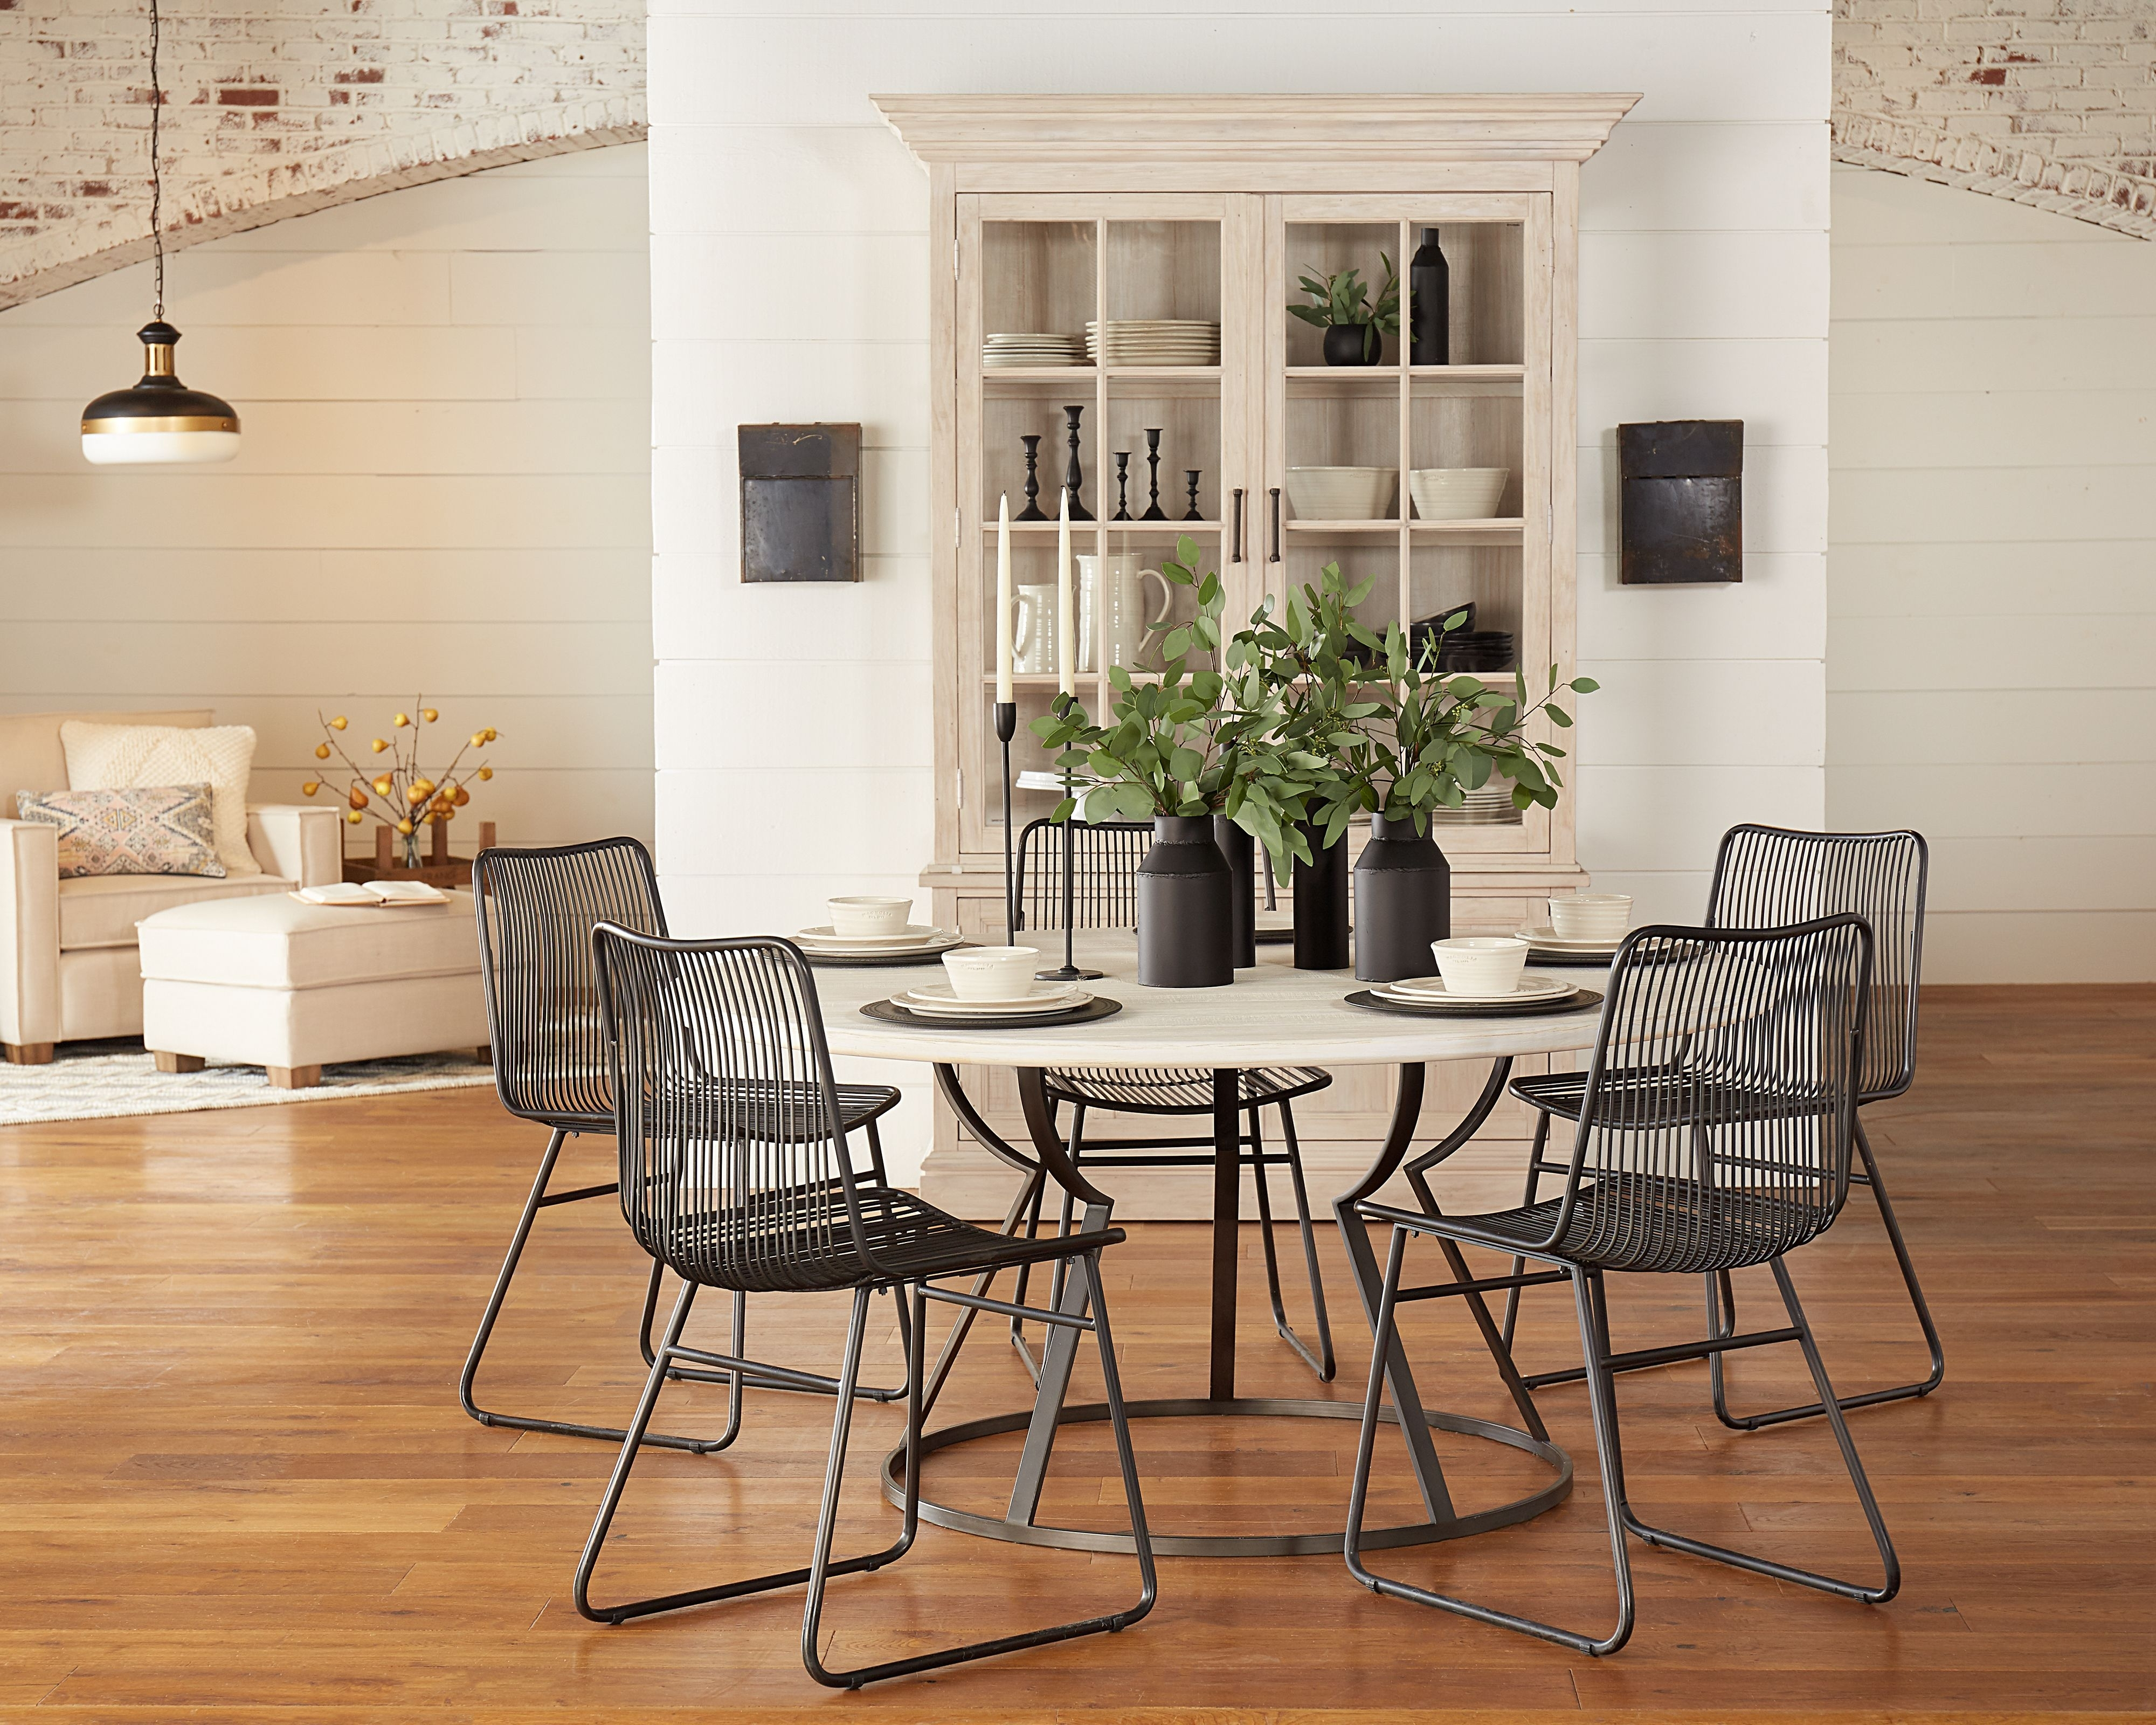 Belford Dining Table With Dru Metal Chairs – Magnolia Home | Heart Throughout Latest Magnolia Home Breakfast Round Black Dining Tables (View 6 of 20)